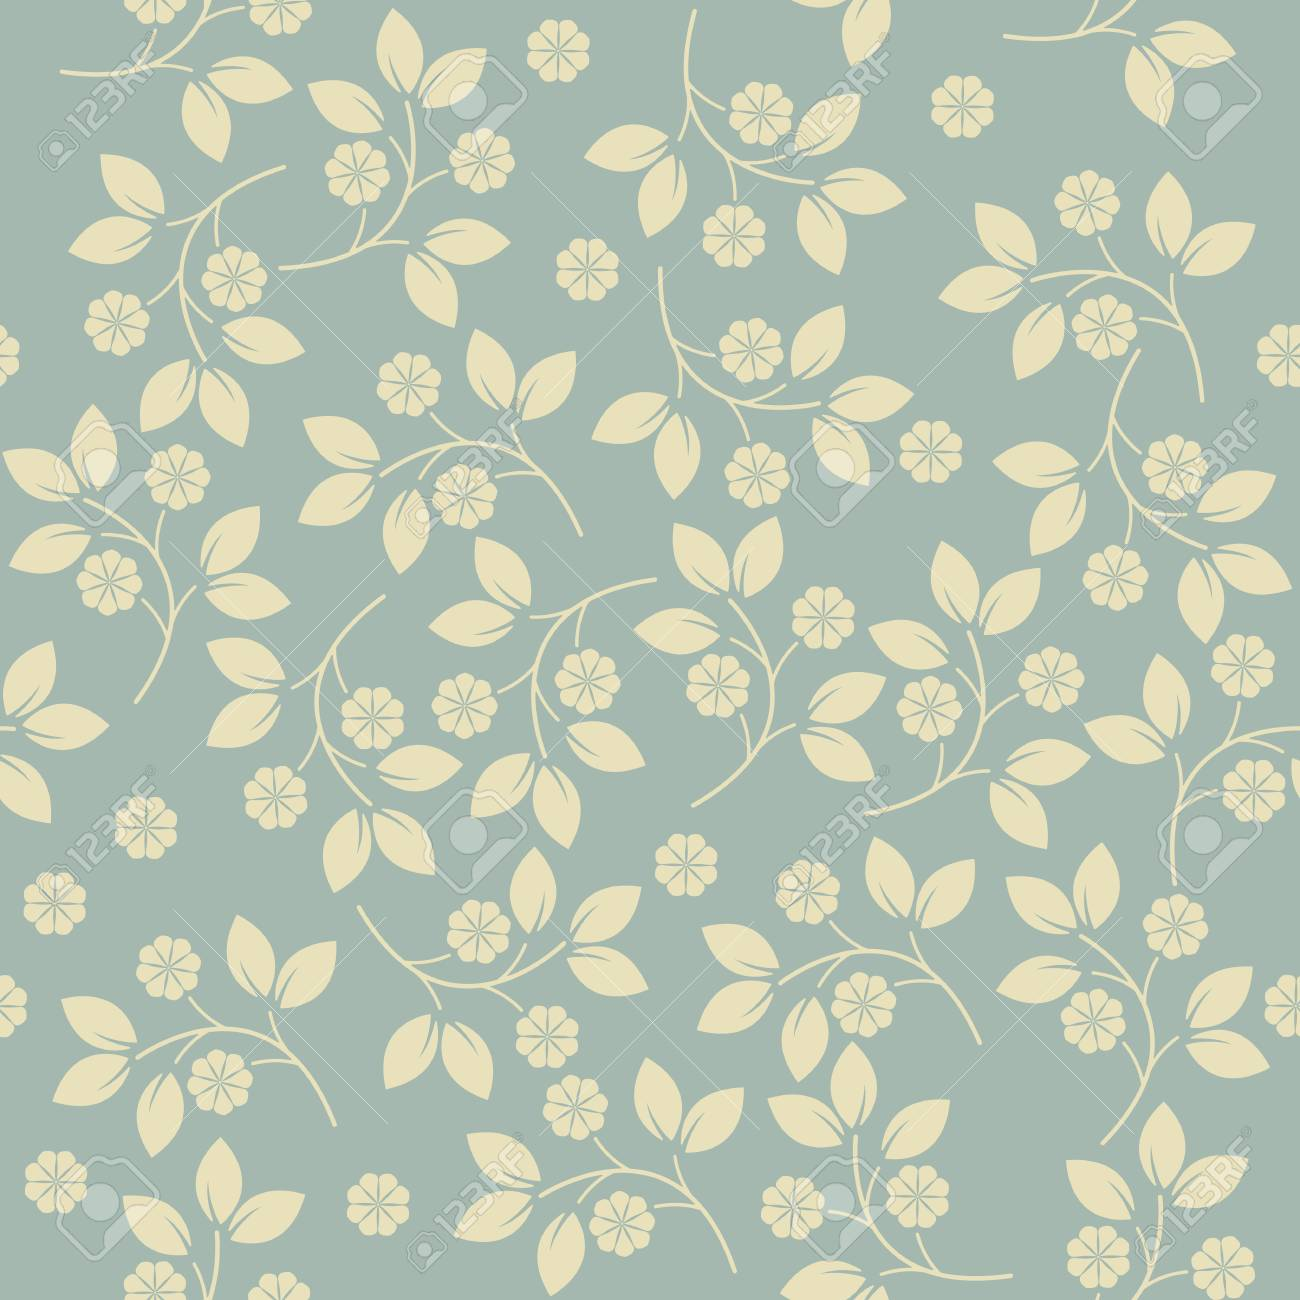 Trendy Endless Pattern With Cute Flowers Can Be Used For Design